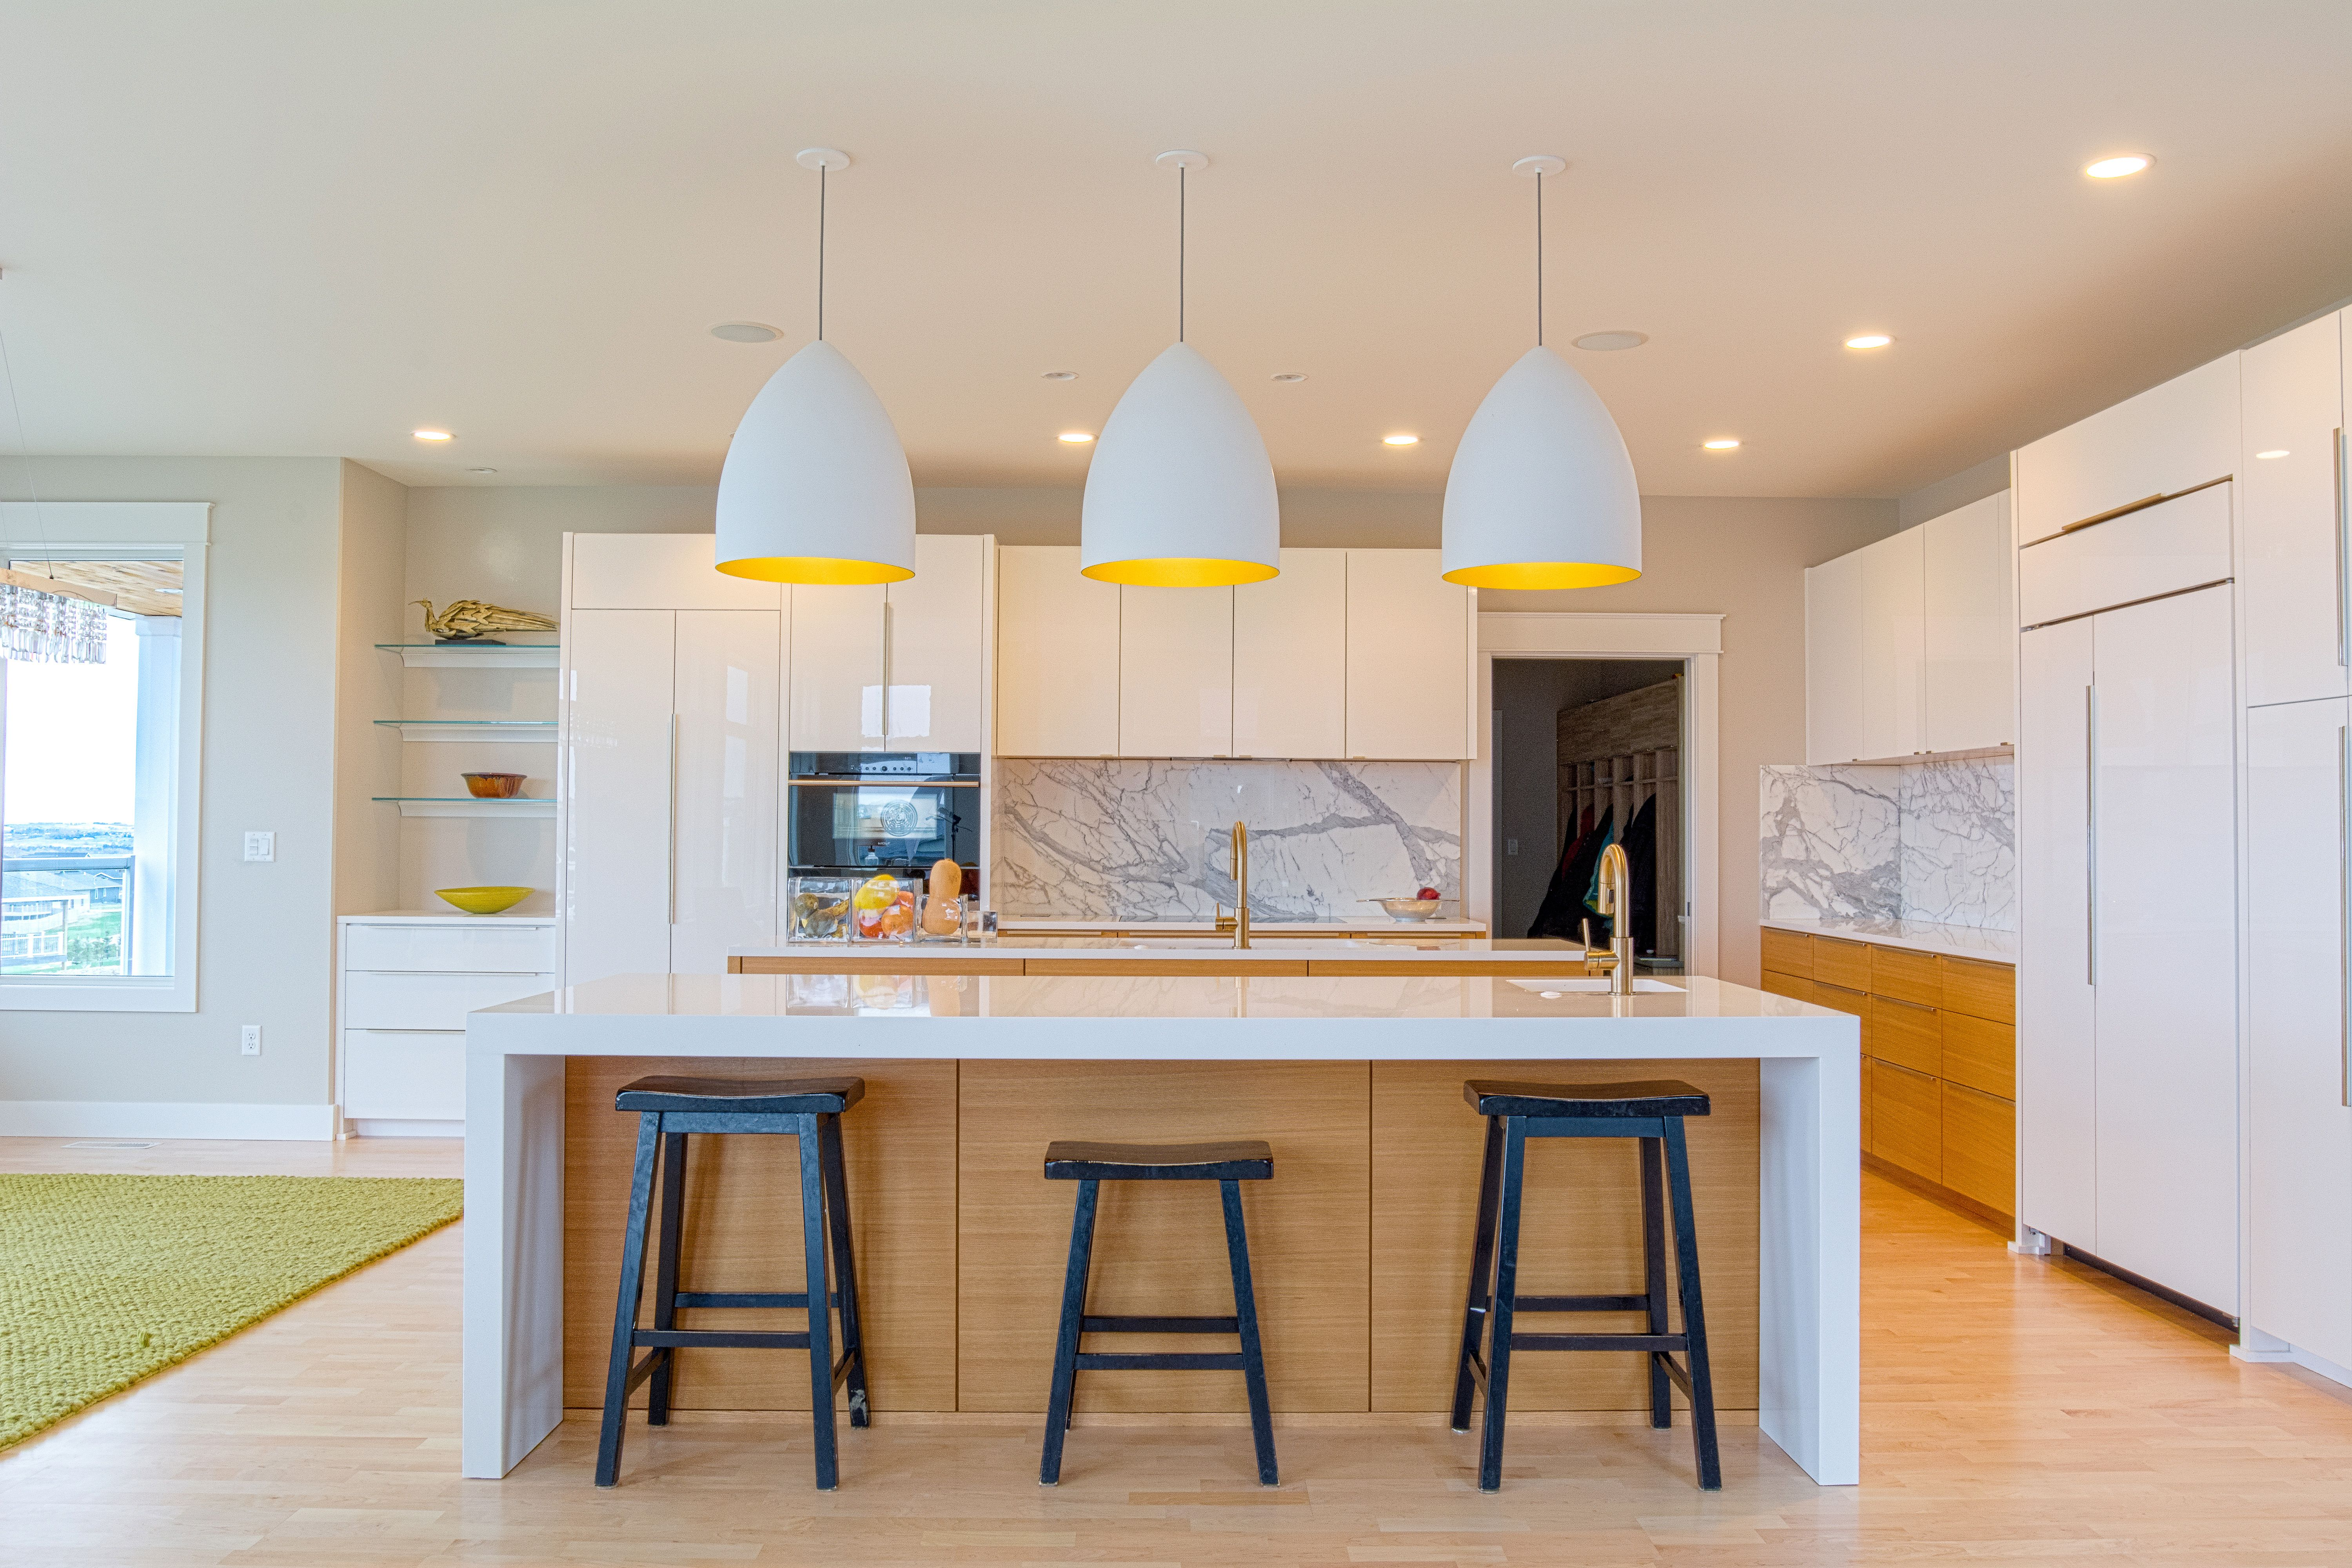 Beautiful Modern Lg Viatera Quartz Countertops In The Color Porcelain White Installed A Local Kitchen For K L Homes Bismarck Nd